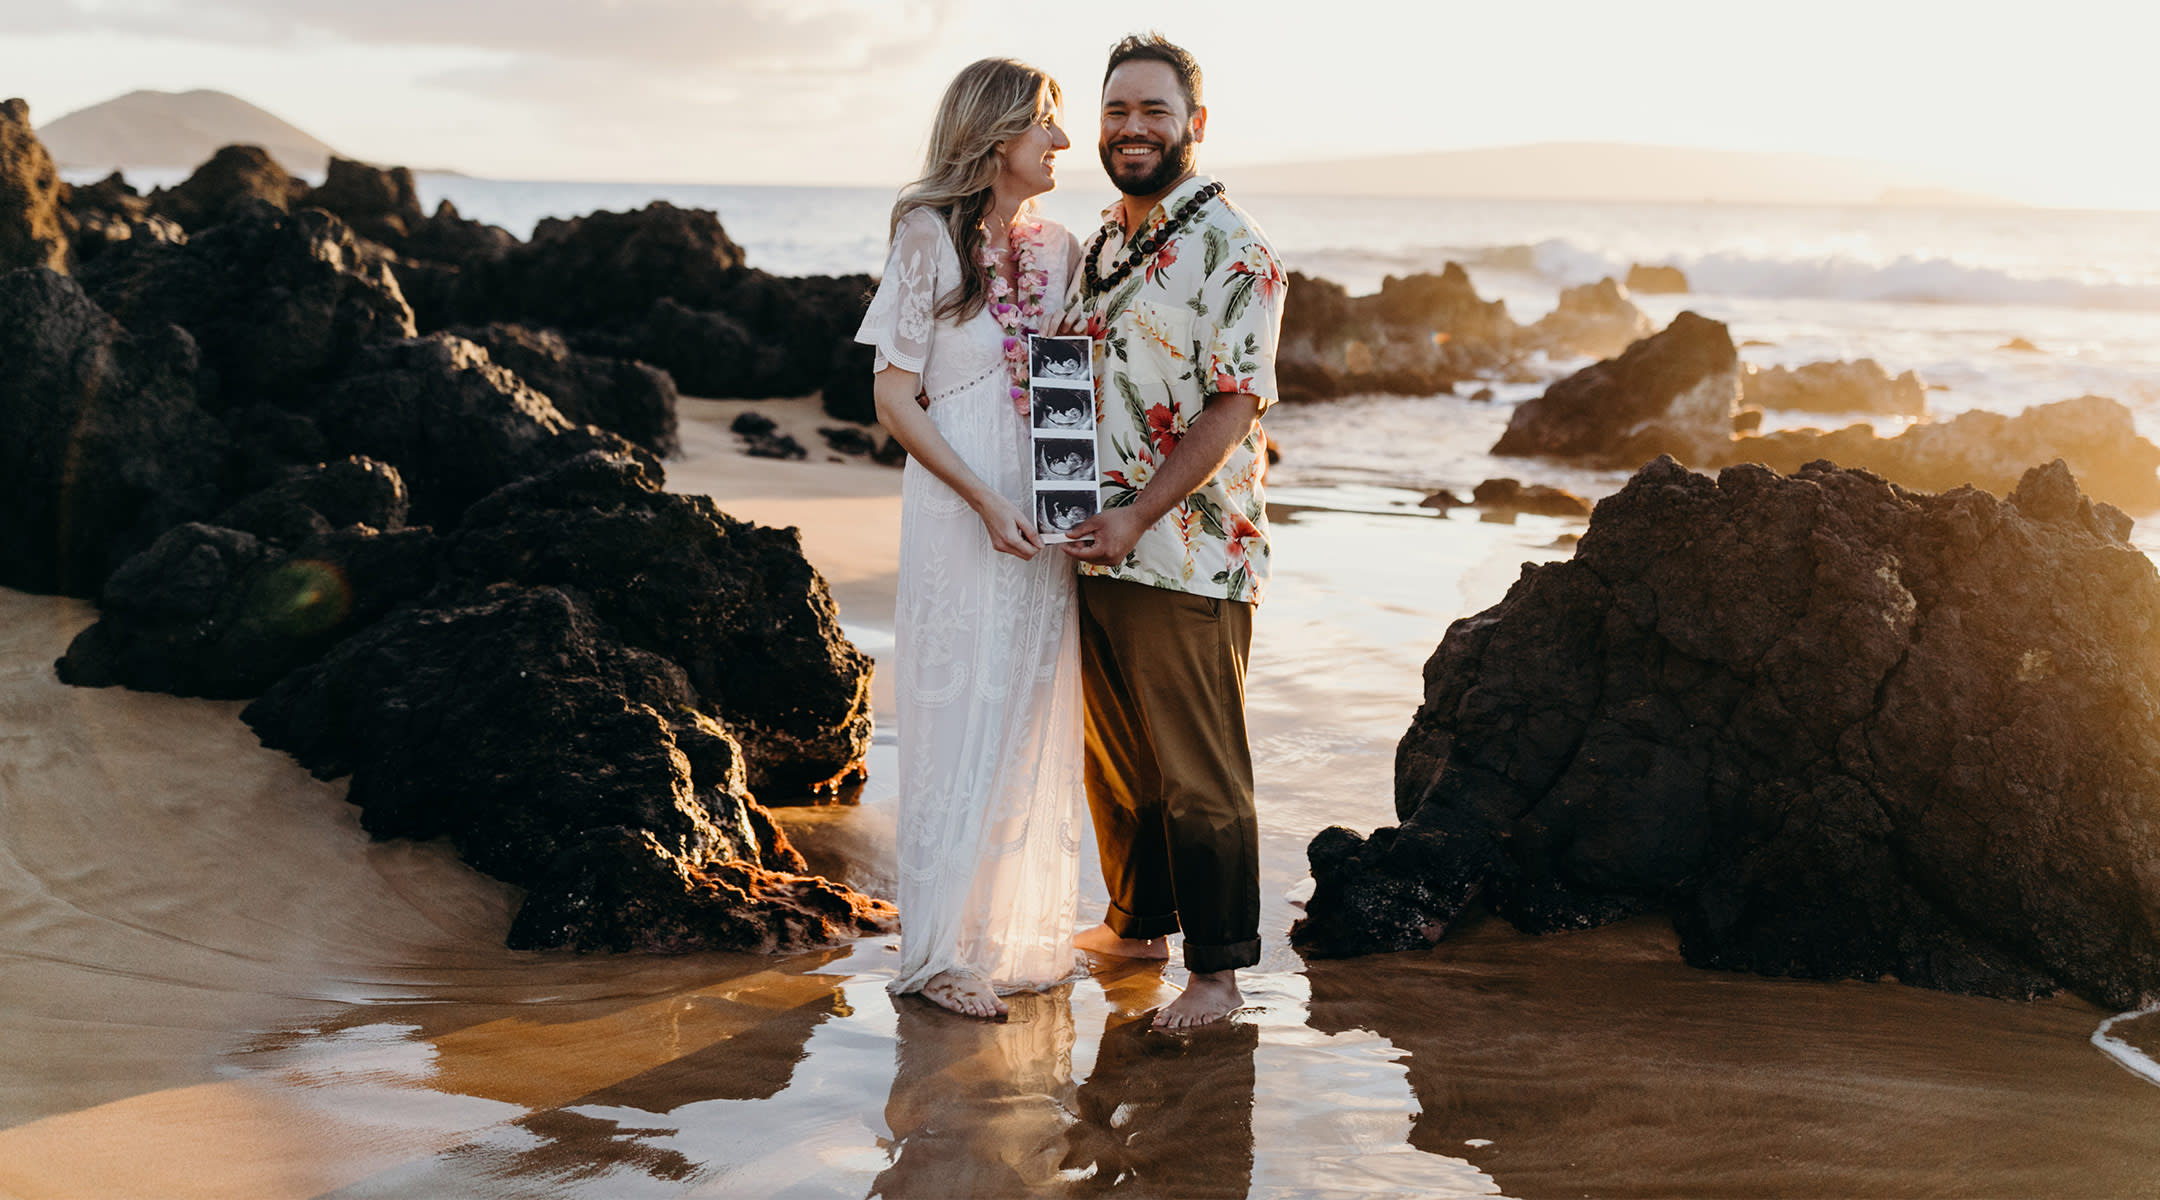 pregnant woman with her partner on babymoon in maui, hawaii